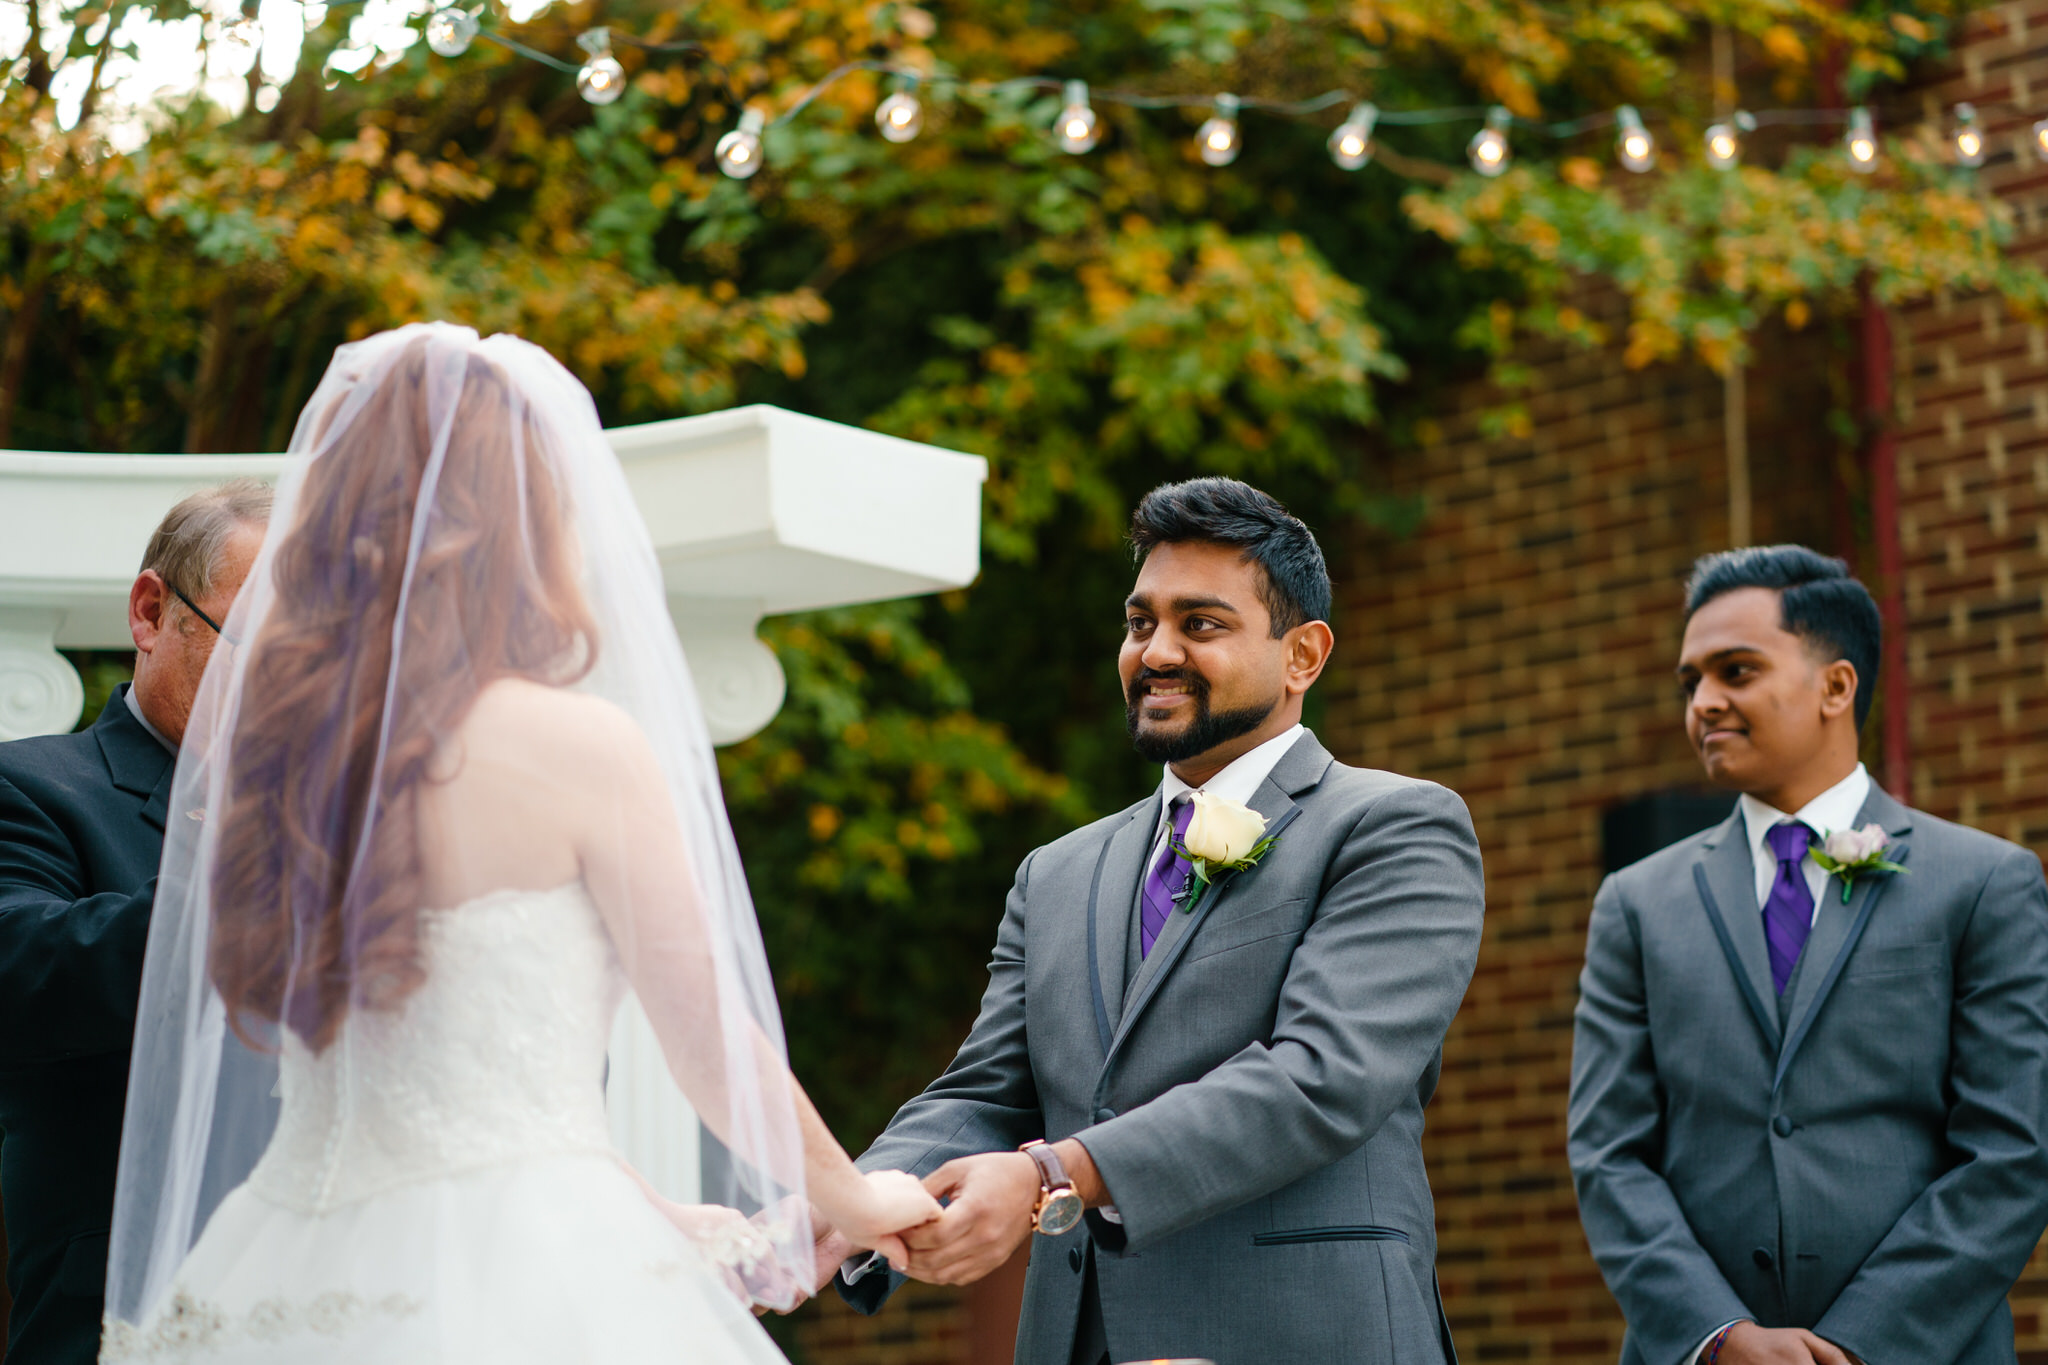 Rachel-Sagar-Garden-on-Millbrook-Wedding-in-Raleigh-NC-015.jpg